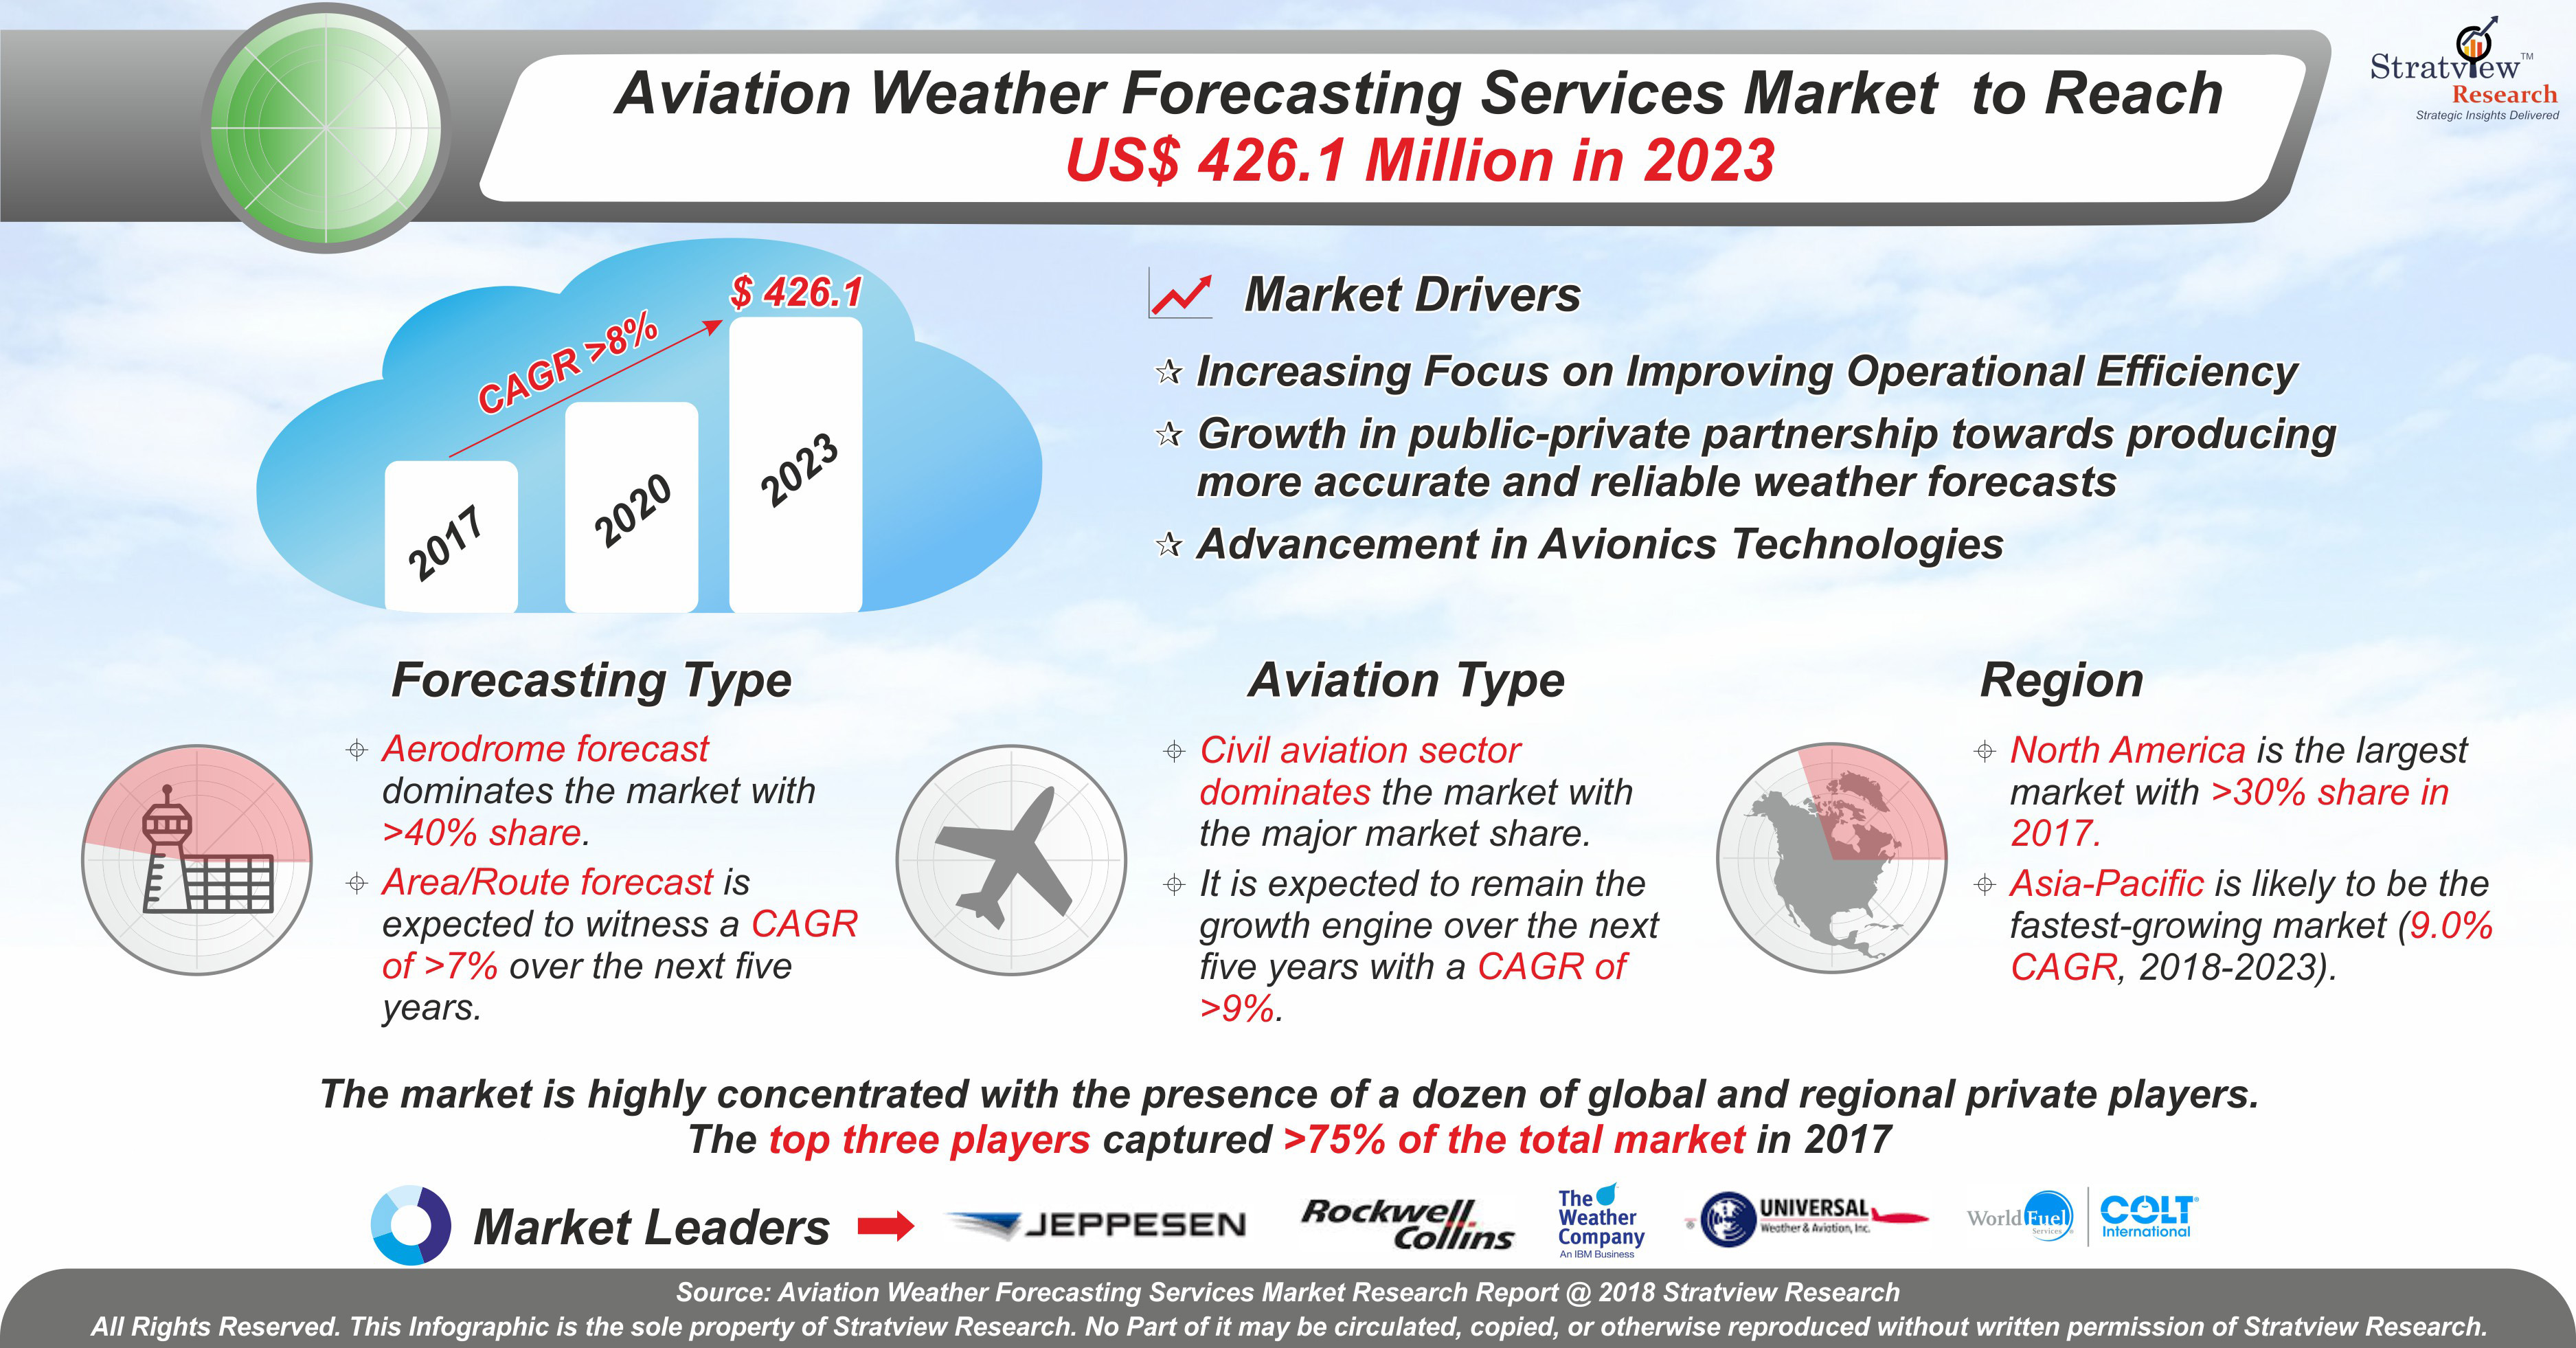 Aviation Weather Forecasting Services Market Analysis